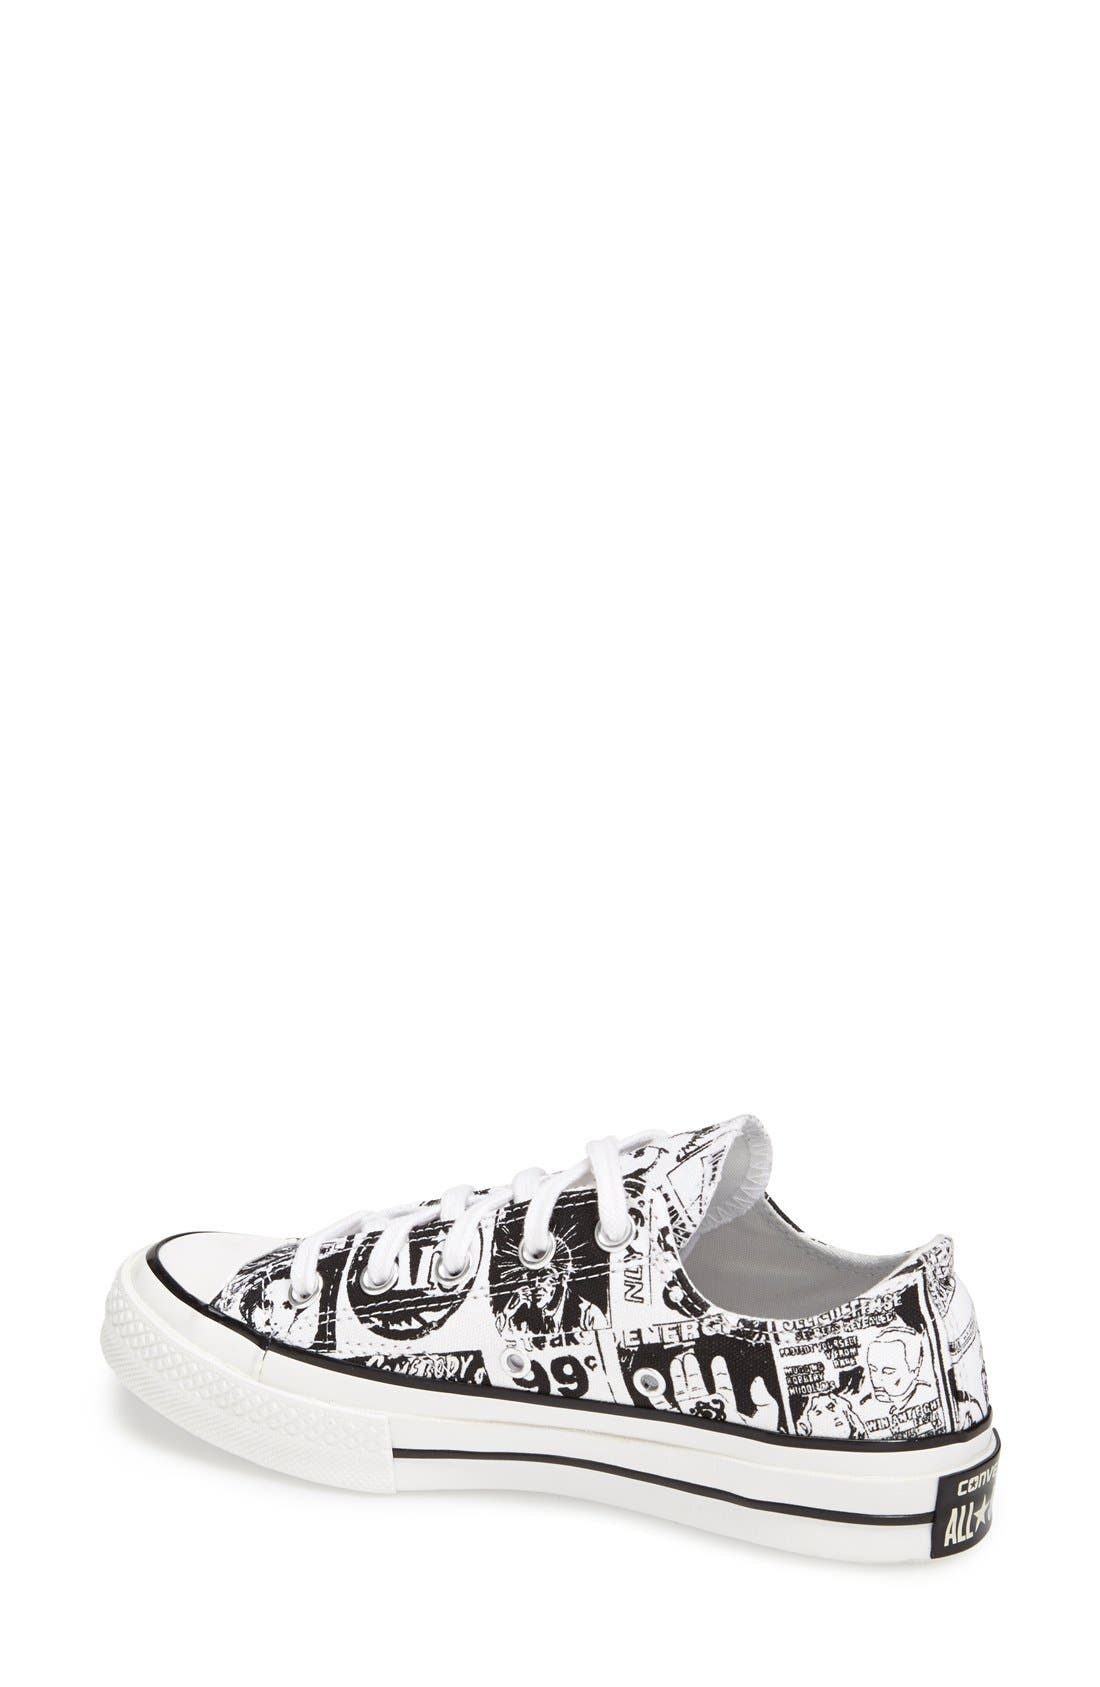 Alternate Image 2  - Converse Chuck Taylor® All Star® '70 Andy Warhol Collection Sneaker (Women)